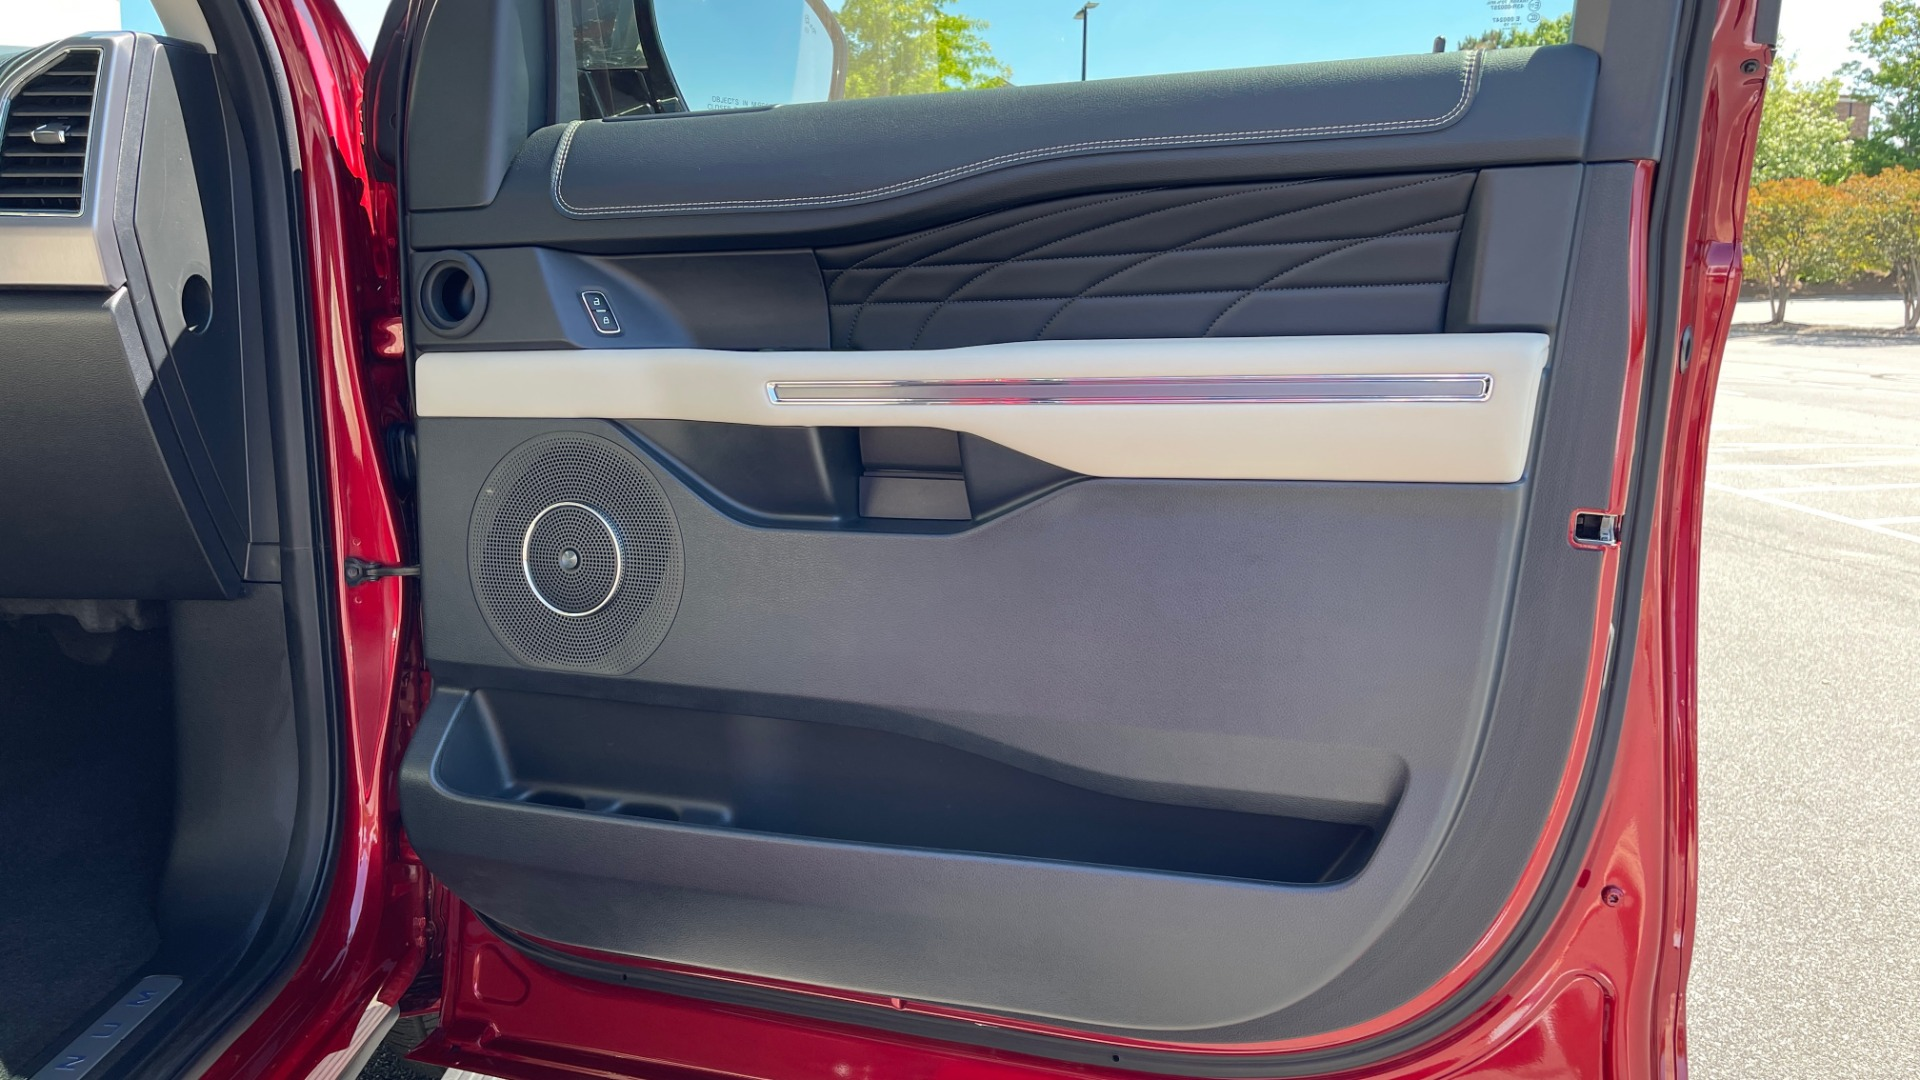 Used 2019 Ford EXPEDITION PLATINUM / 3.5L ECOBOOST / NAV / WIFI / SUNROOF / 3-ROW / REARVIEW for sale Sold at Formula Imports in Charlotte NC 28227 92